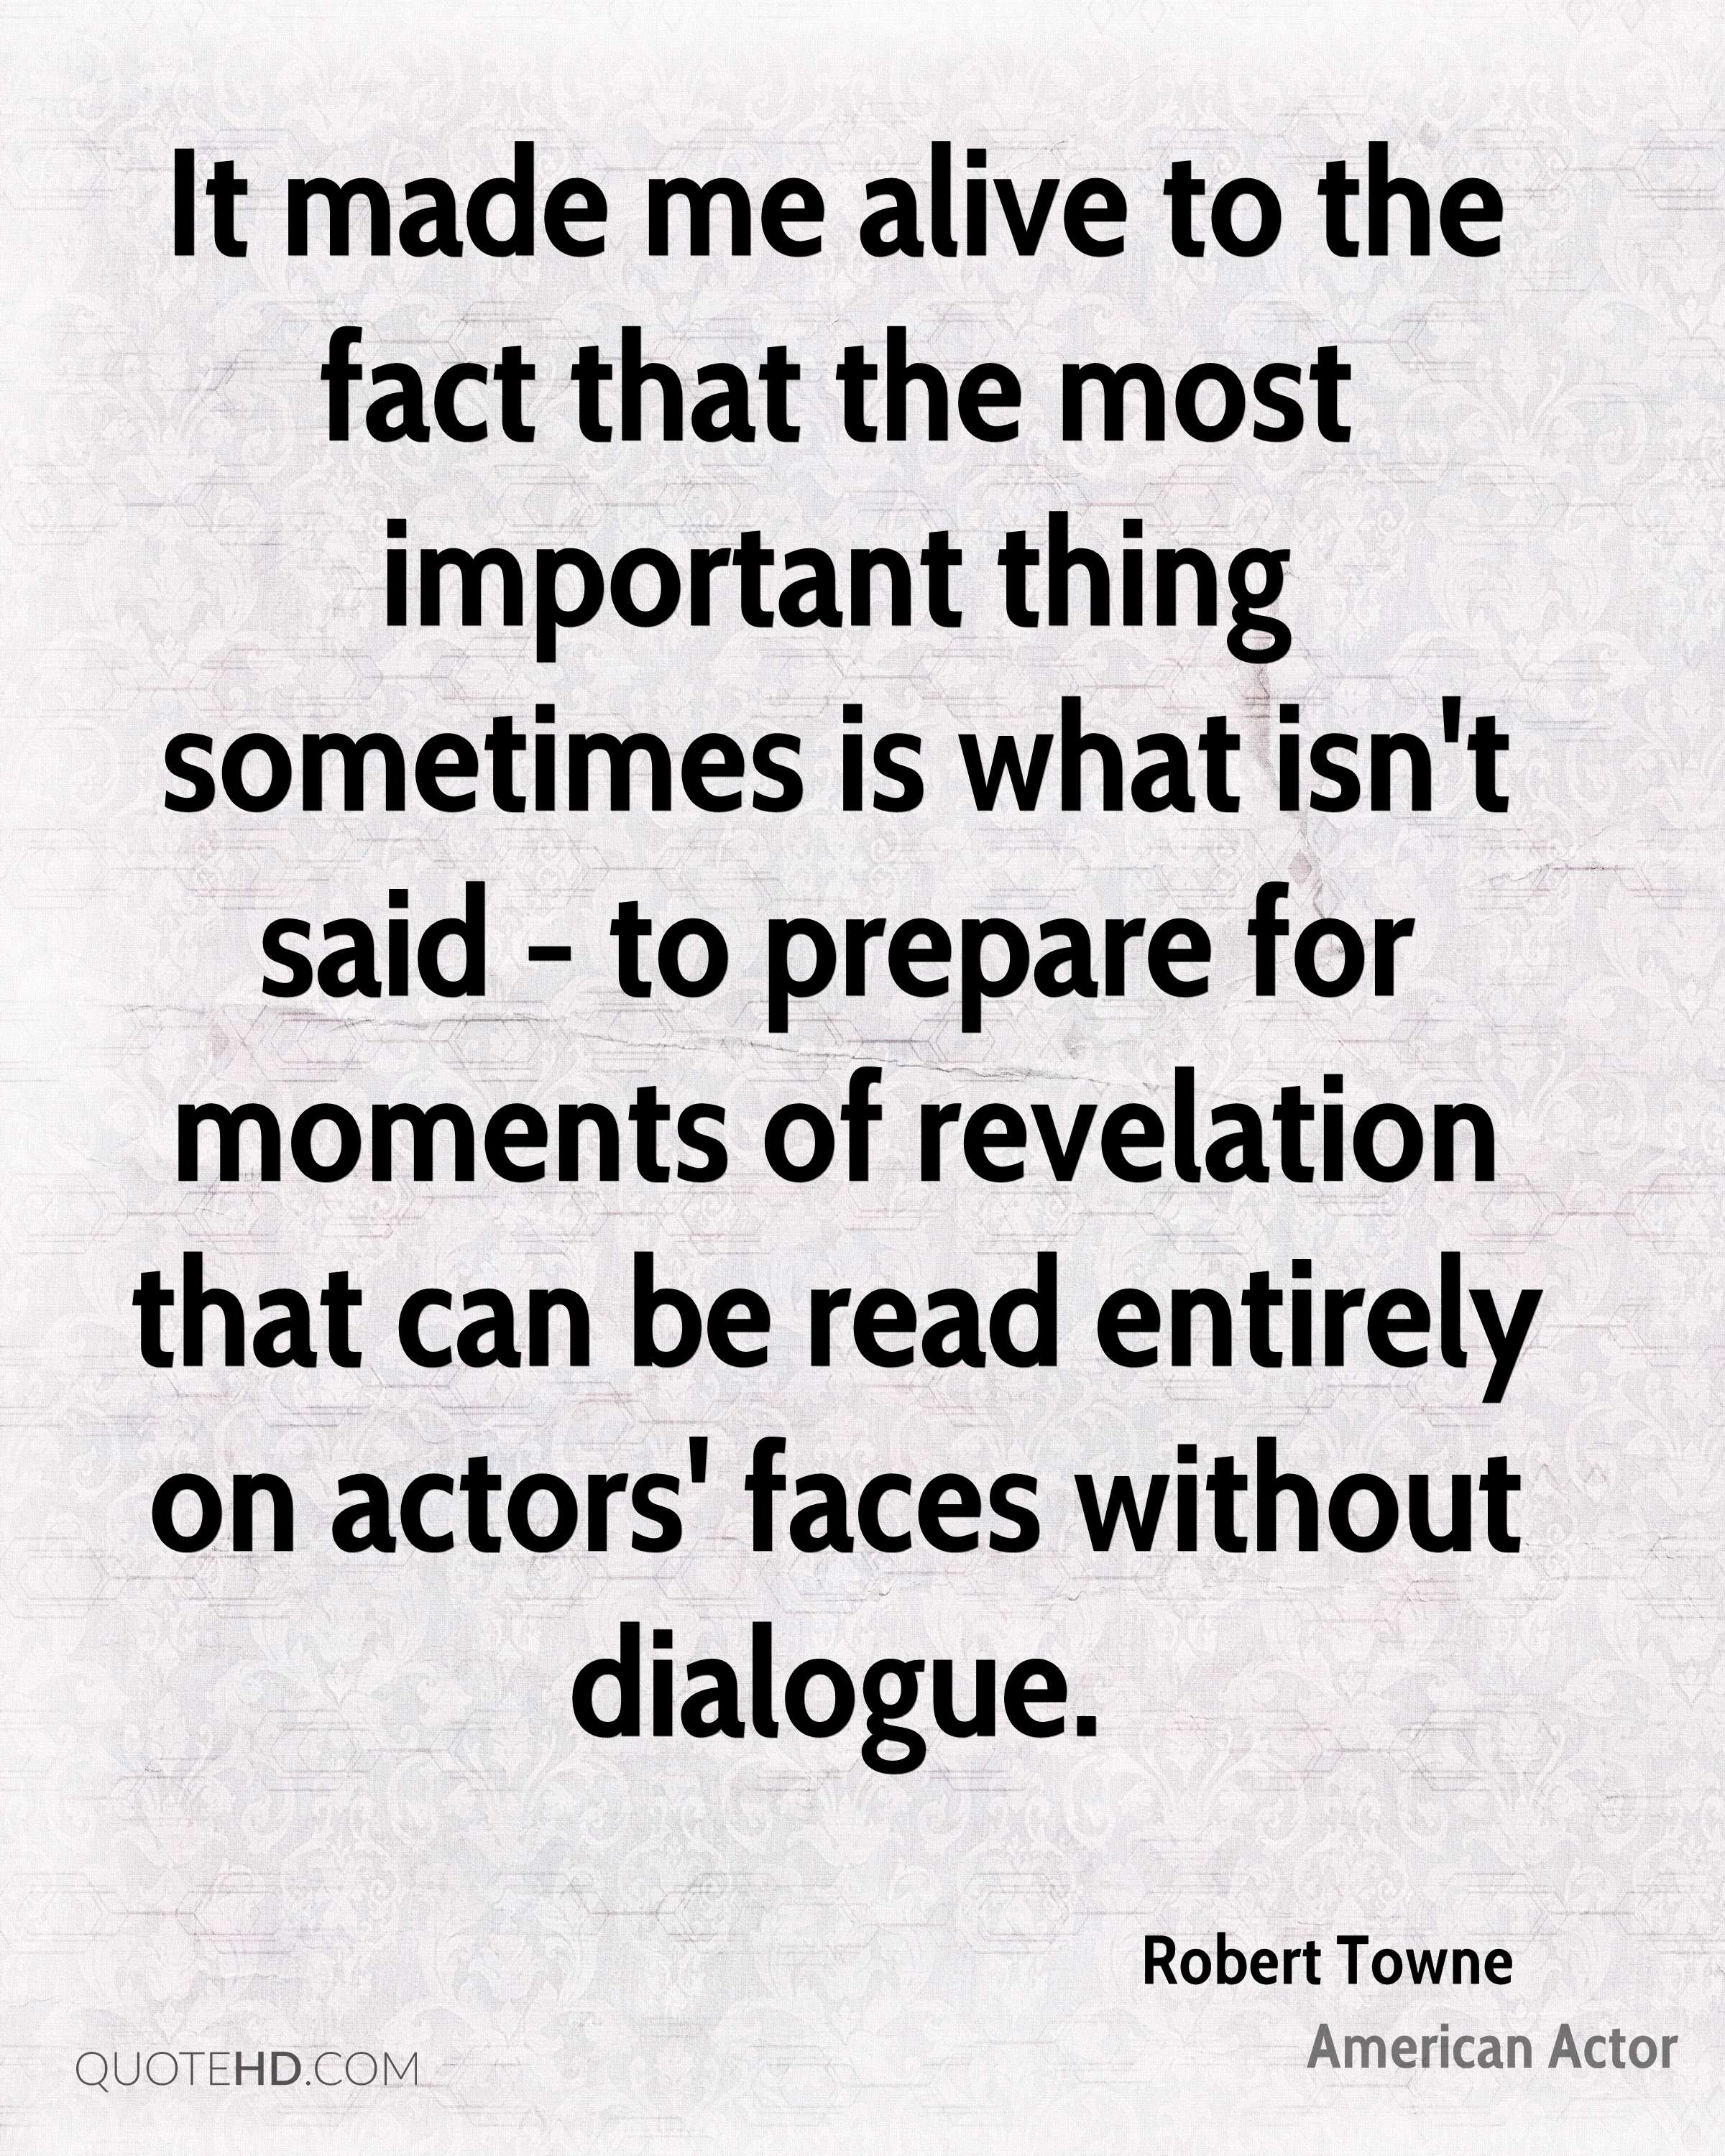 It made me alive to the fact that the most important thing sometimes is what isn't said - to prepare for moments of revelation that can be read entirely on actors' faces without dialogue.